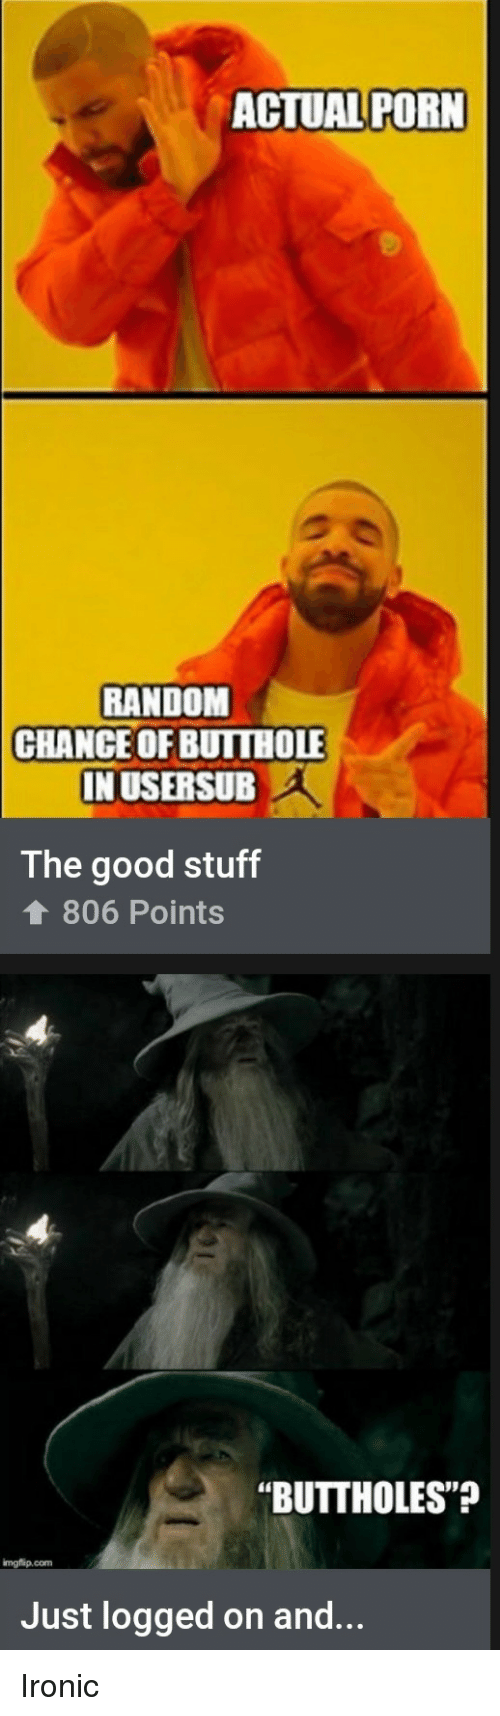 "Usersub: ACTUAL PORN  RANDOM  CHANCEOF BUITHOLE  IN USERSUB  The good stuff  806 Points  ""BUTTHOLES""  imgflip.com  Just logged on and... Ironic"